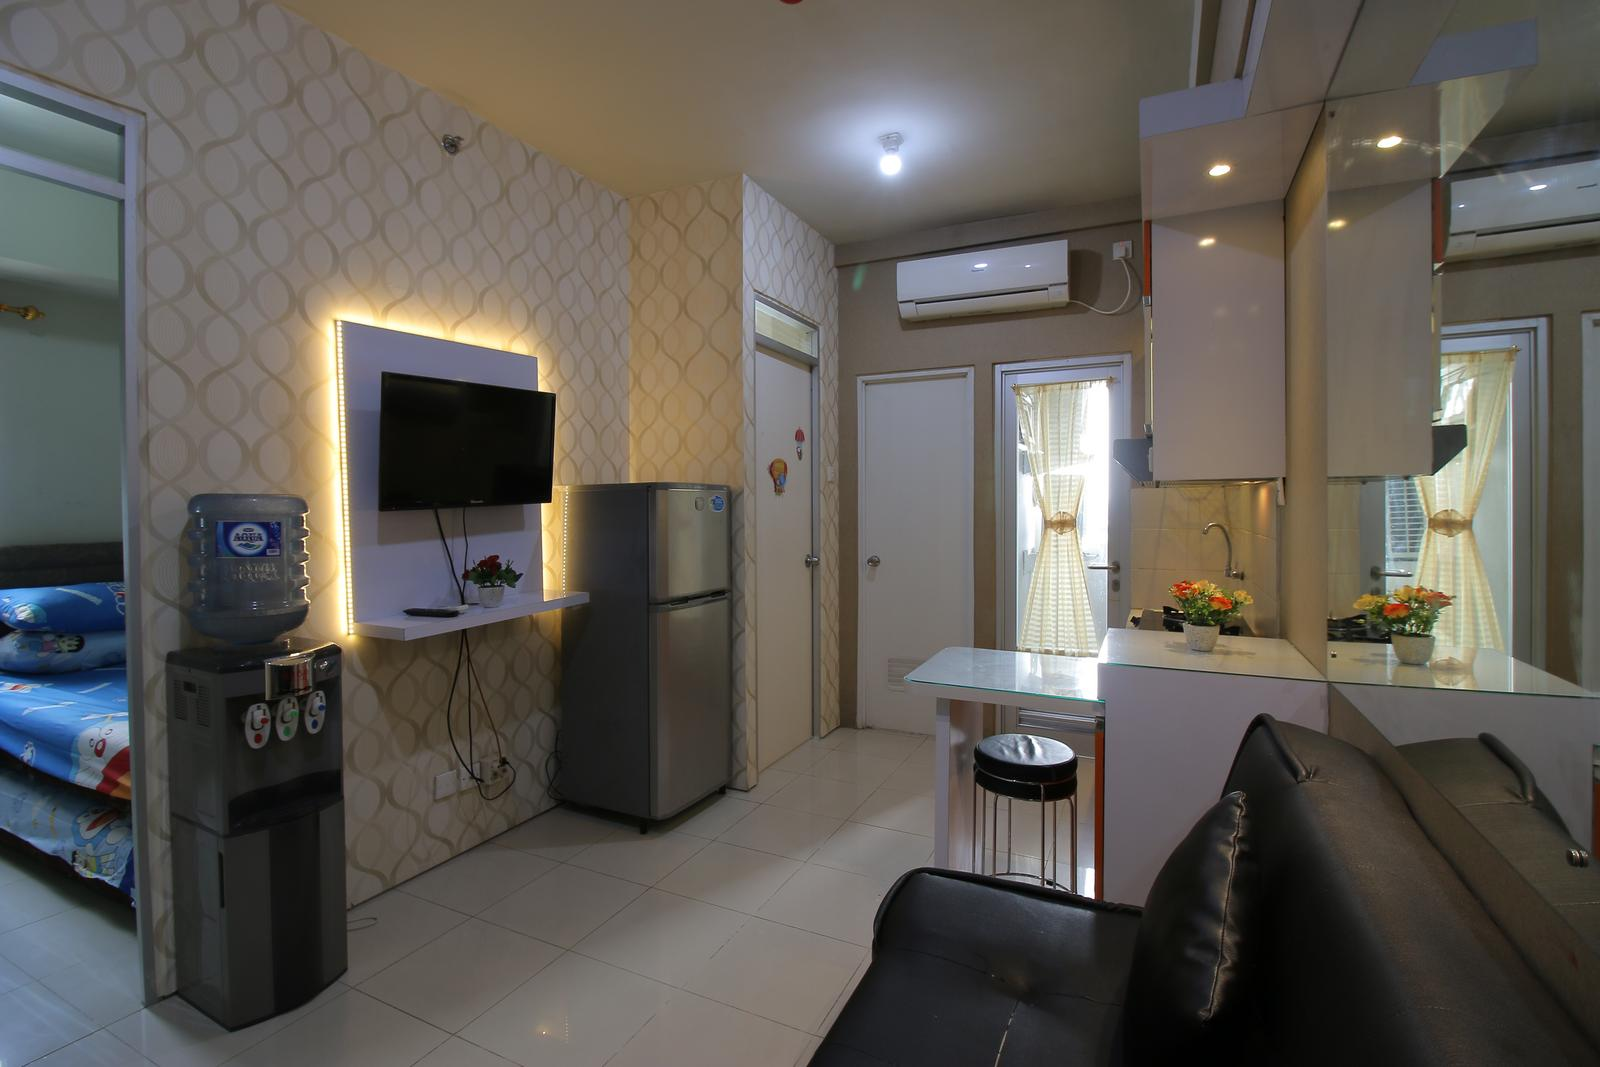 Gading Nias Residence - 2 Bedroom Grand Emerald Apartment Gading Nias